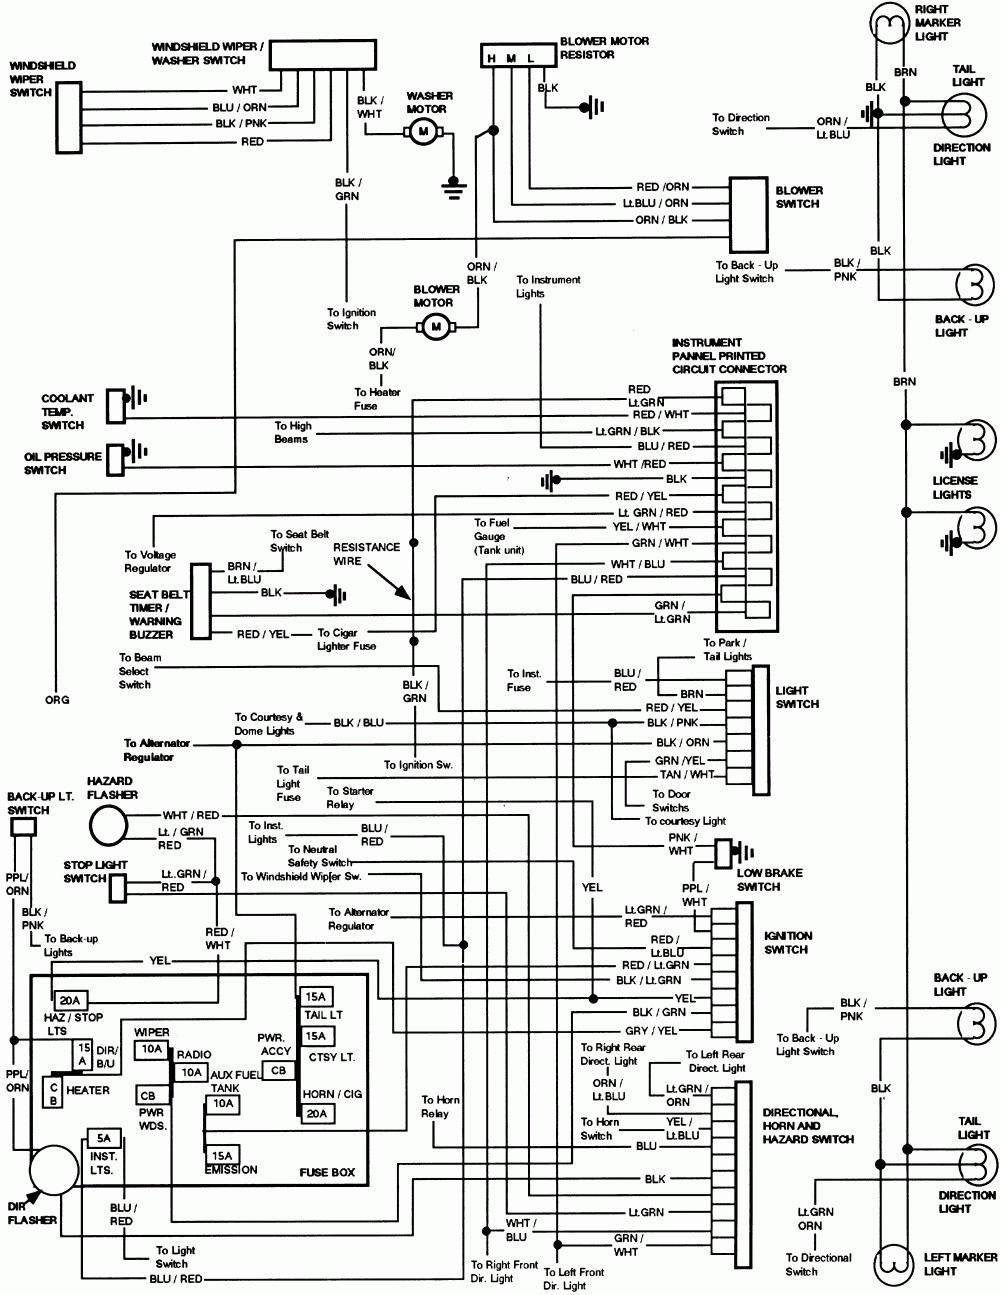 hight resolution of 1986 ford f 150 fuel system diagram simple wiring schema 1992 ford f 150 wiring diagram 1996 ford f 150 wiring diagram